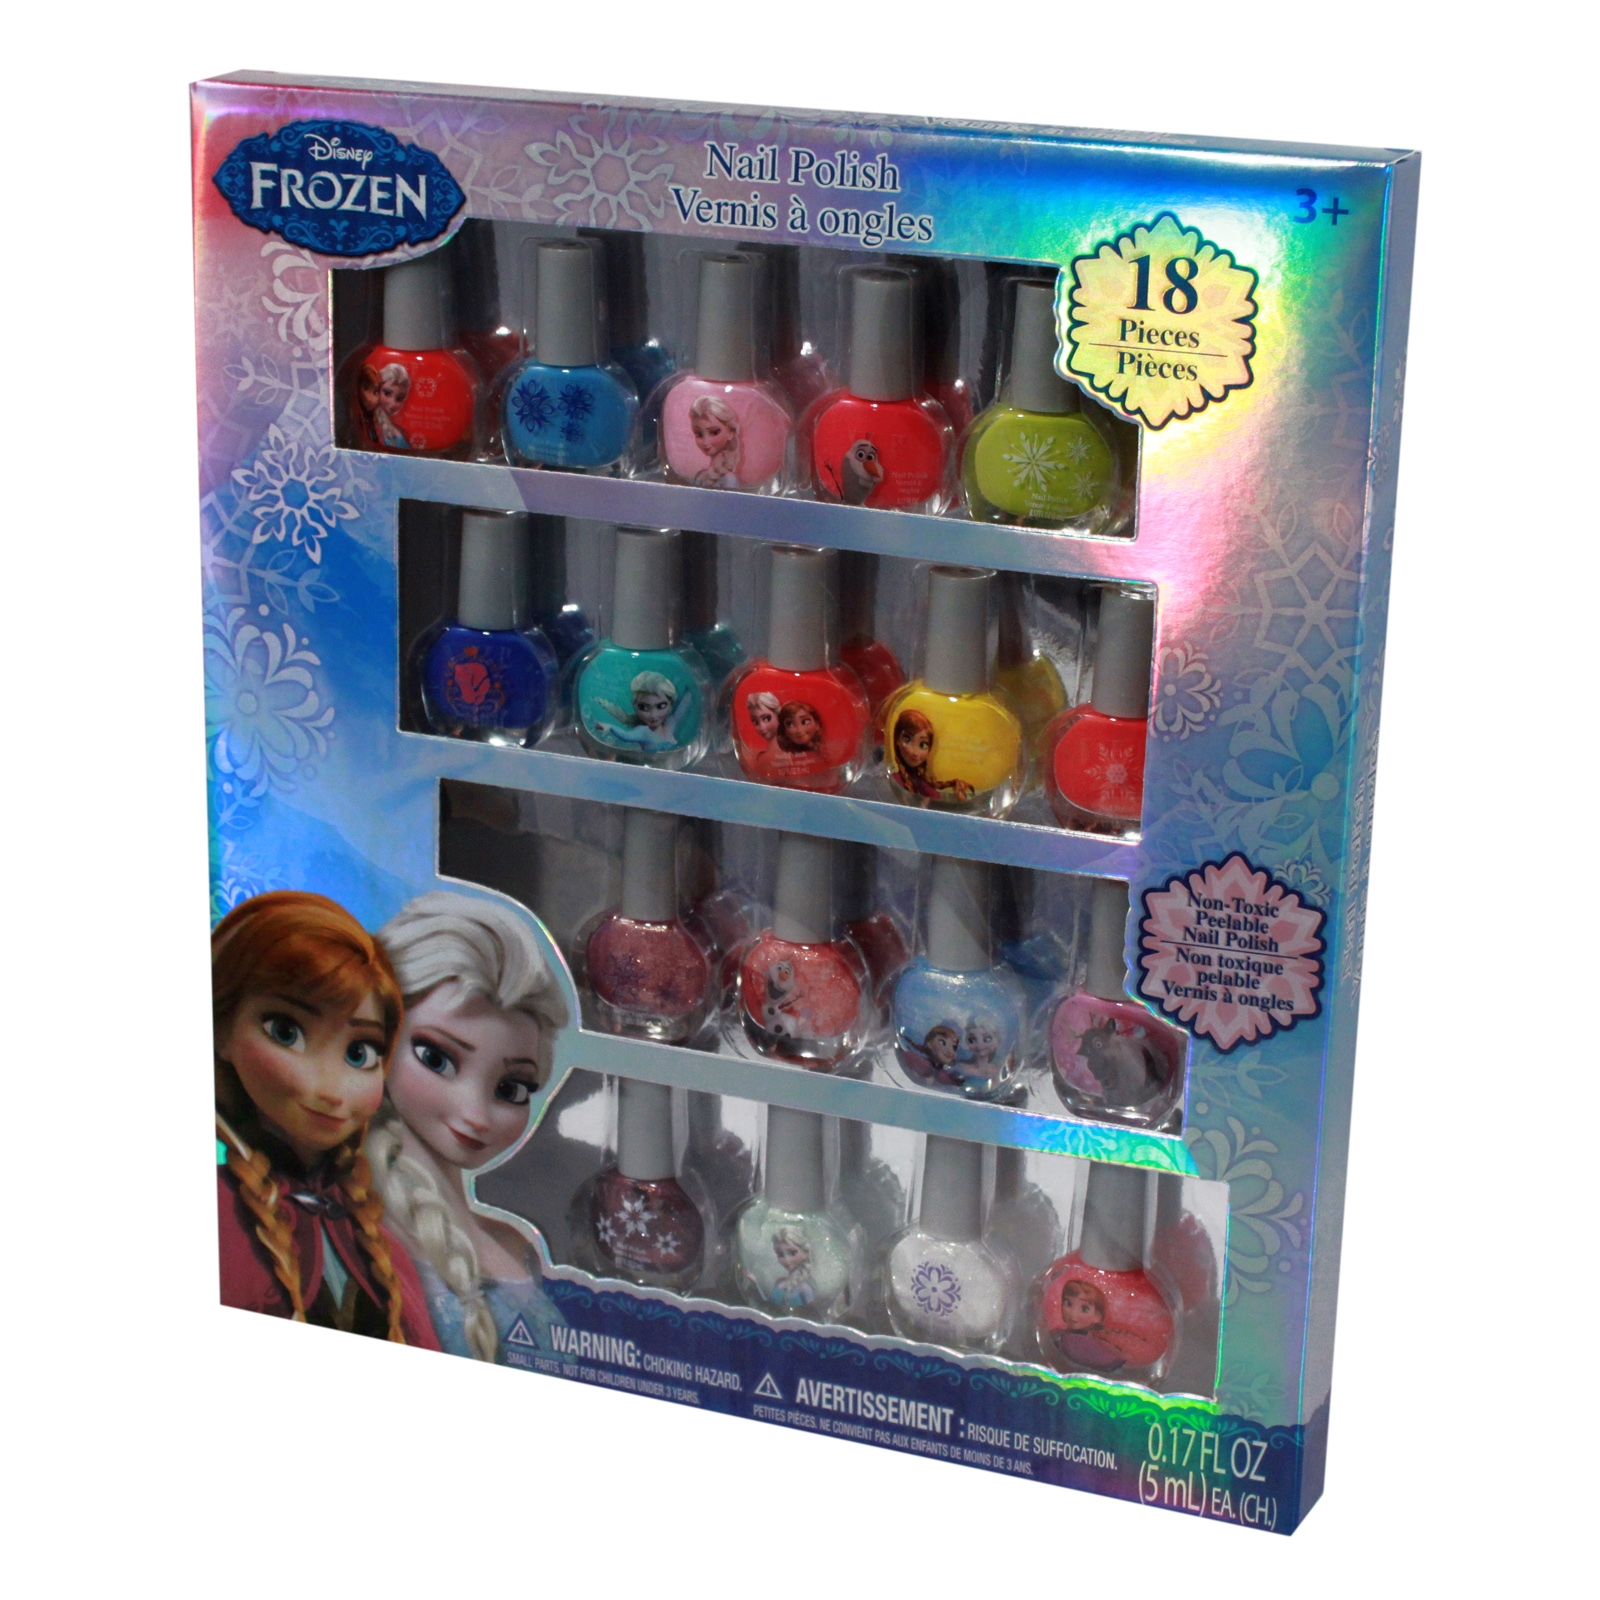 Disney Frozen Anna, Elsa, Olaf, and Sven 18 Piece Nail Polish Set Frozen Nail Polish Box, 18 Count non toxic and peelable polish